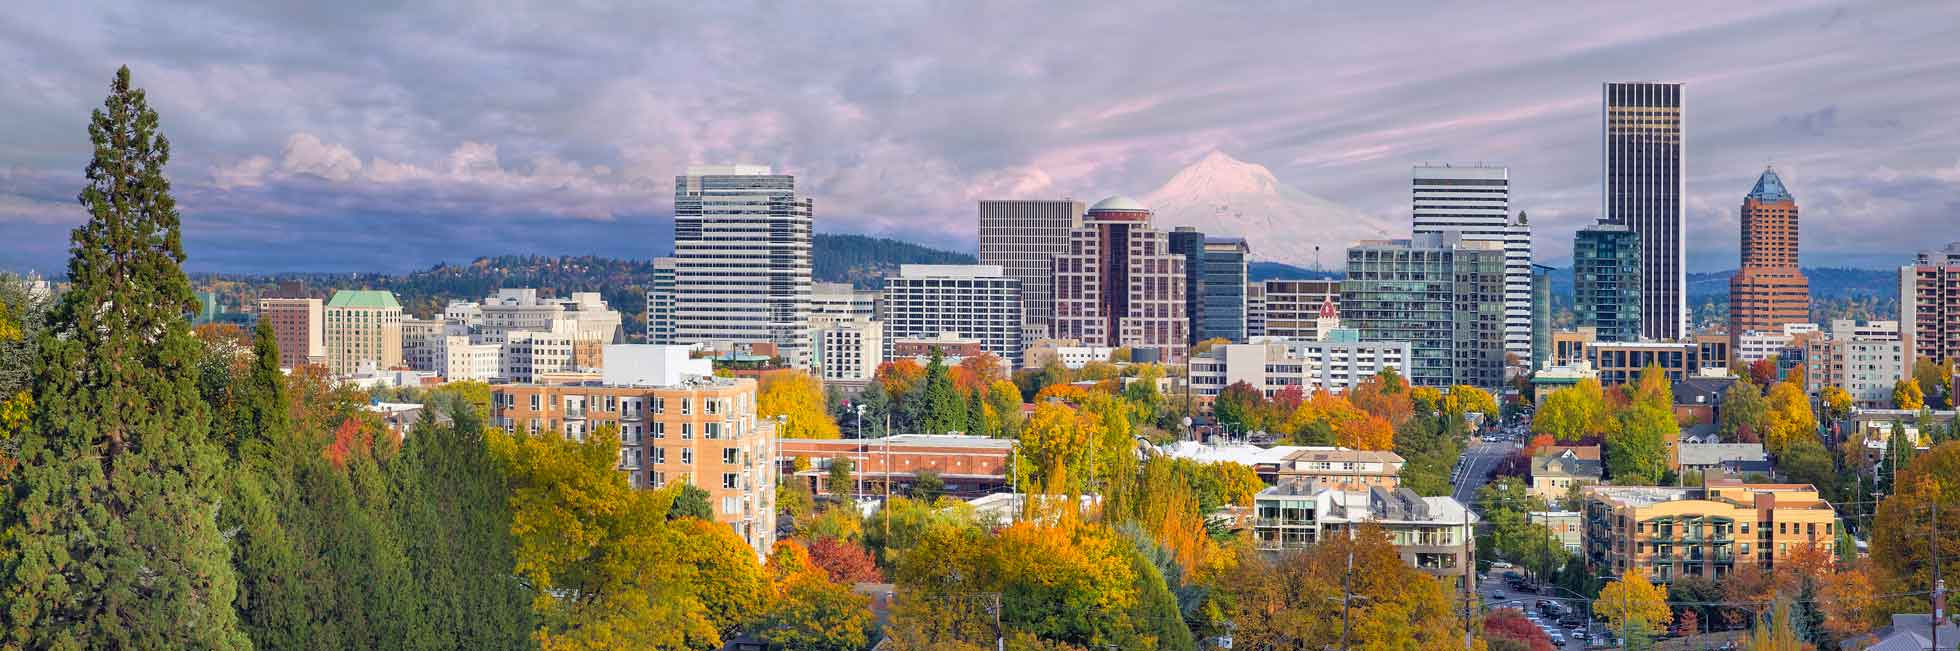 City of Portland skyline in autumn, showing Mt. Hood in the background.